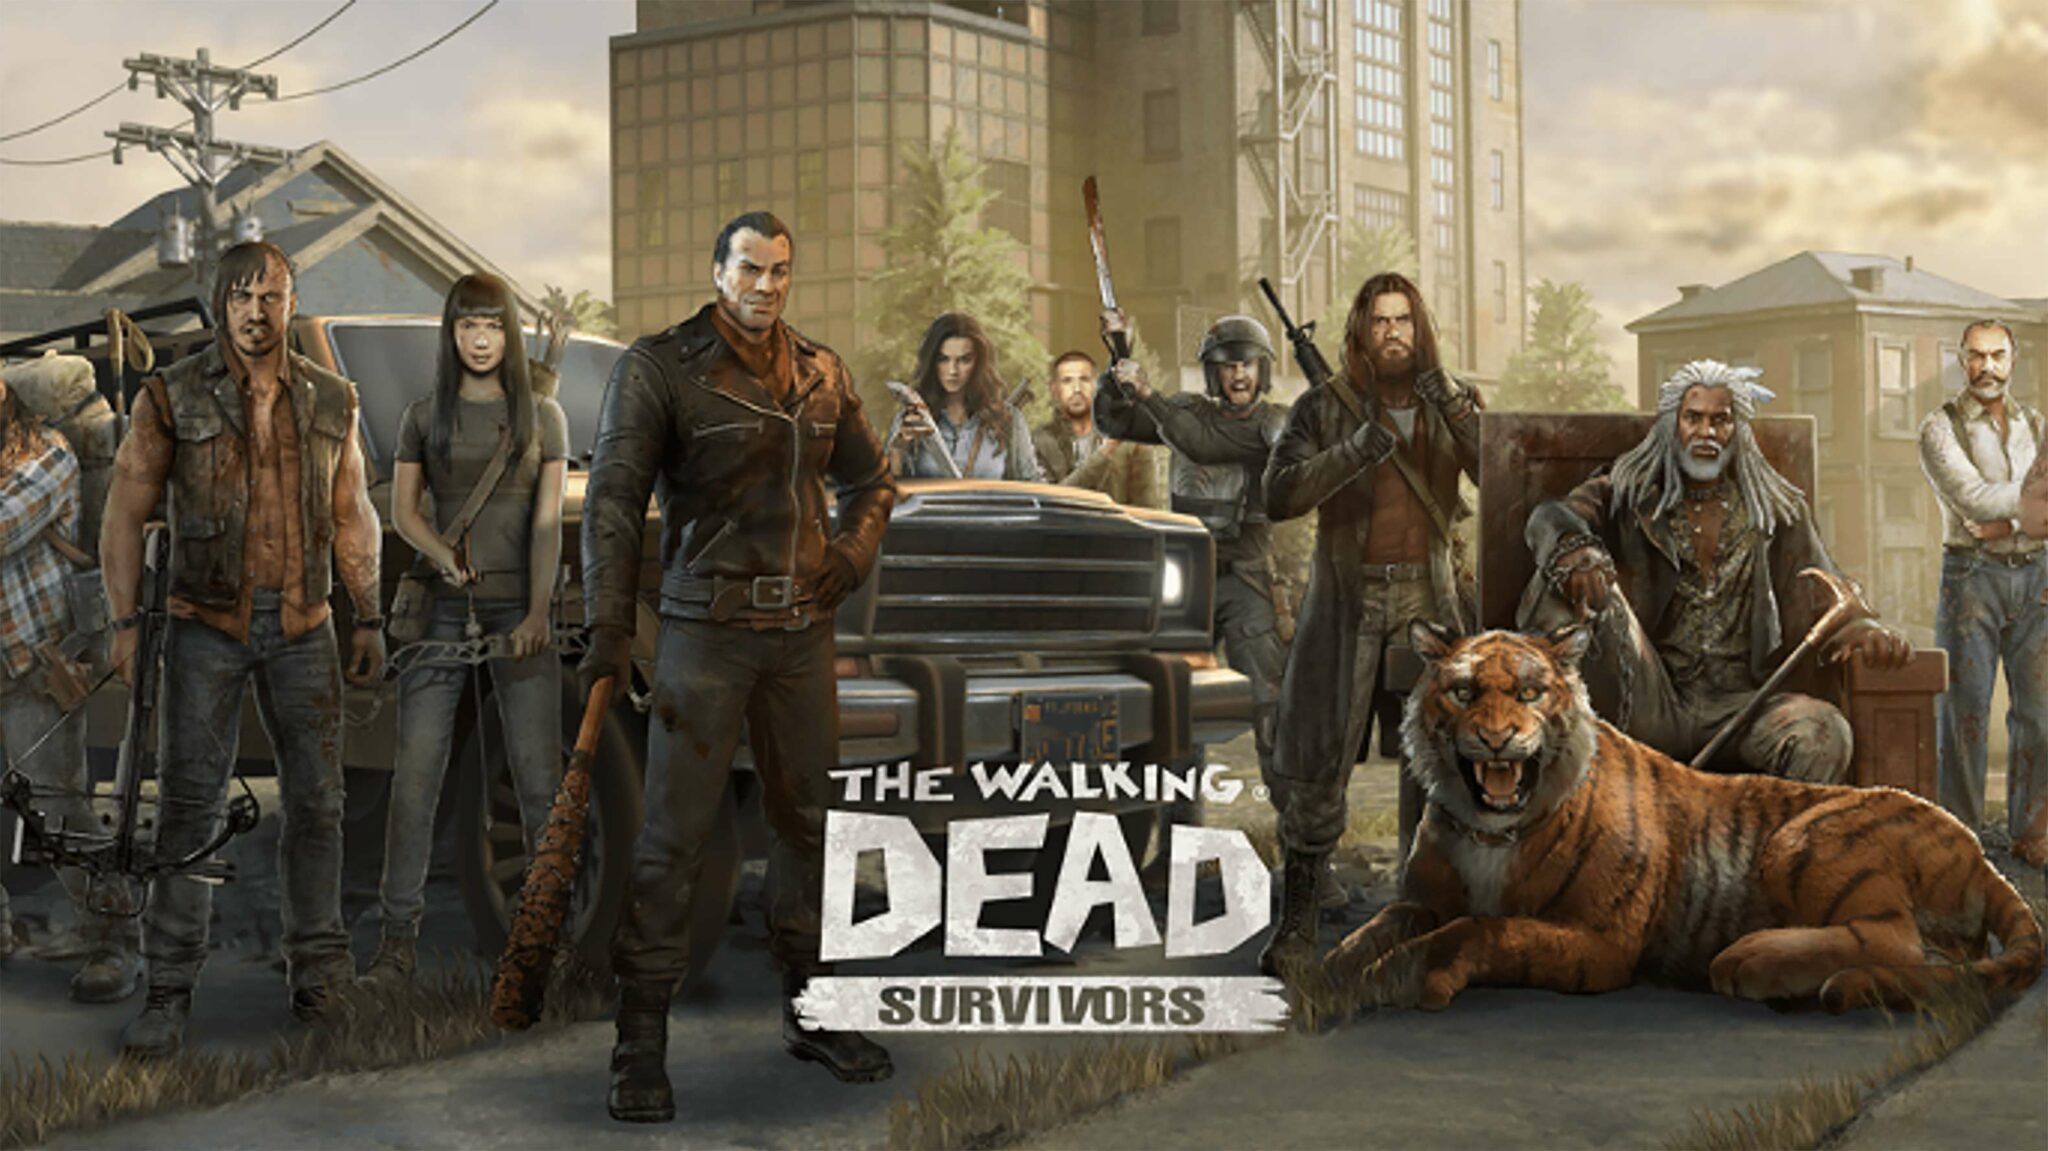 The Walking Dead: Survivors launching on mobile on April 12